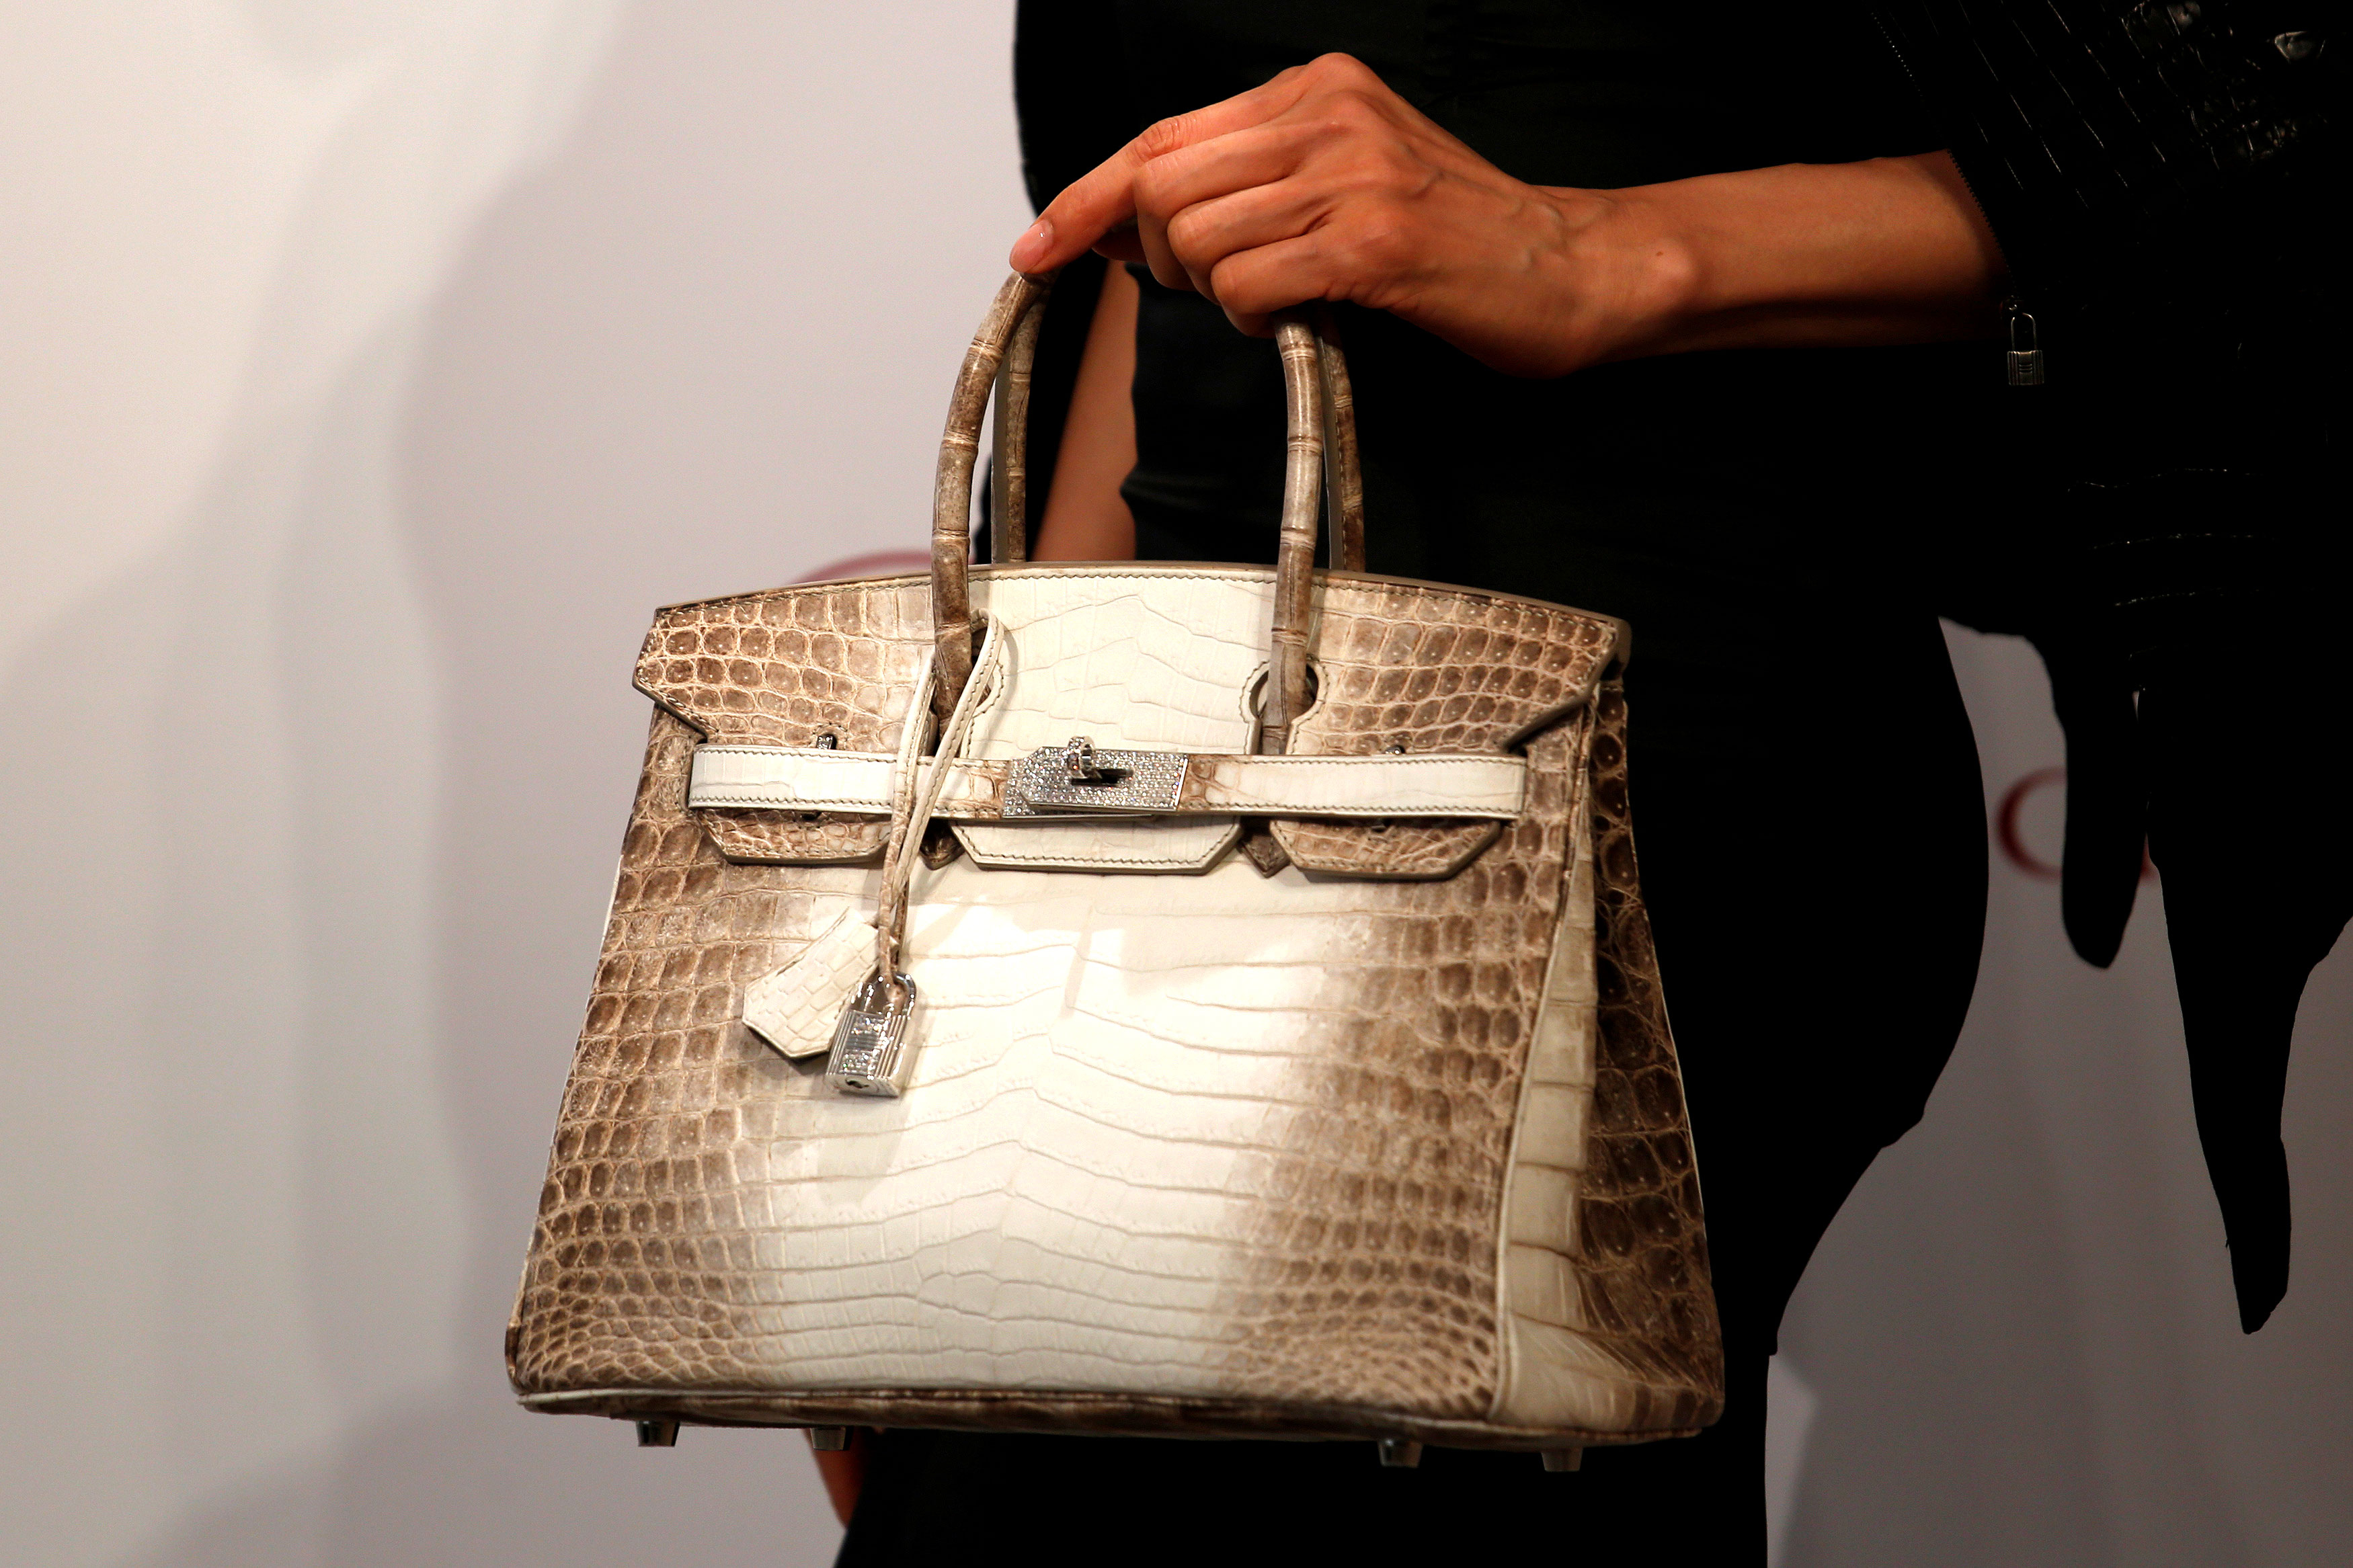 fd89385224a This Purse Is Now the World s Most Expensive Handbag  Pics